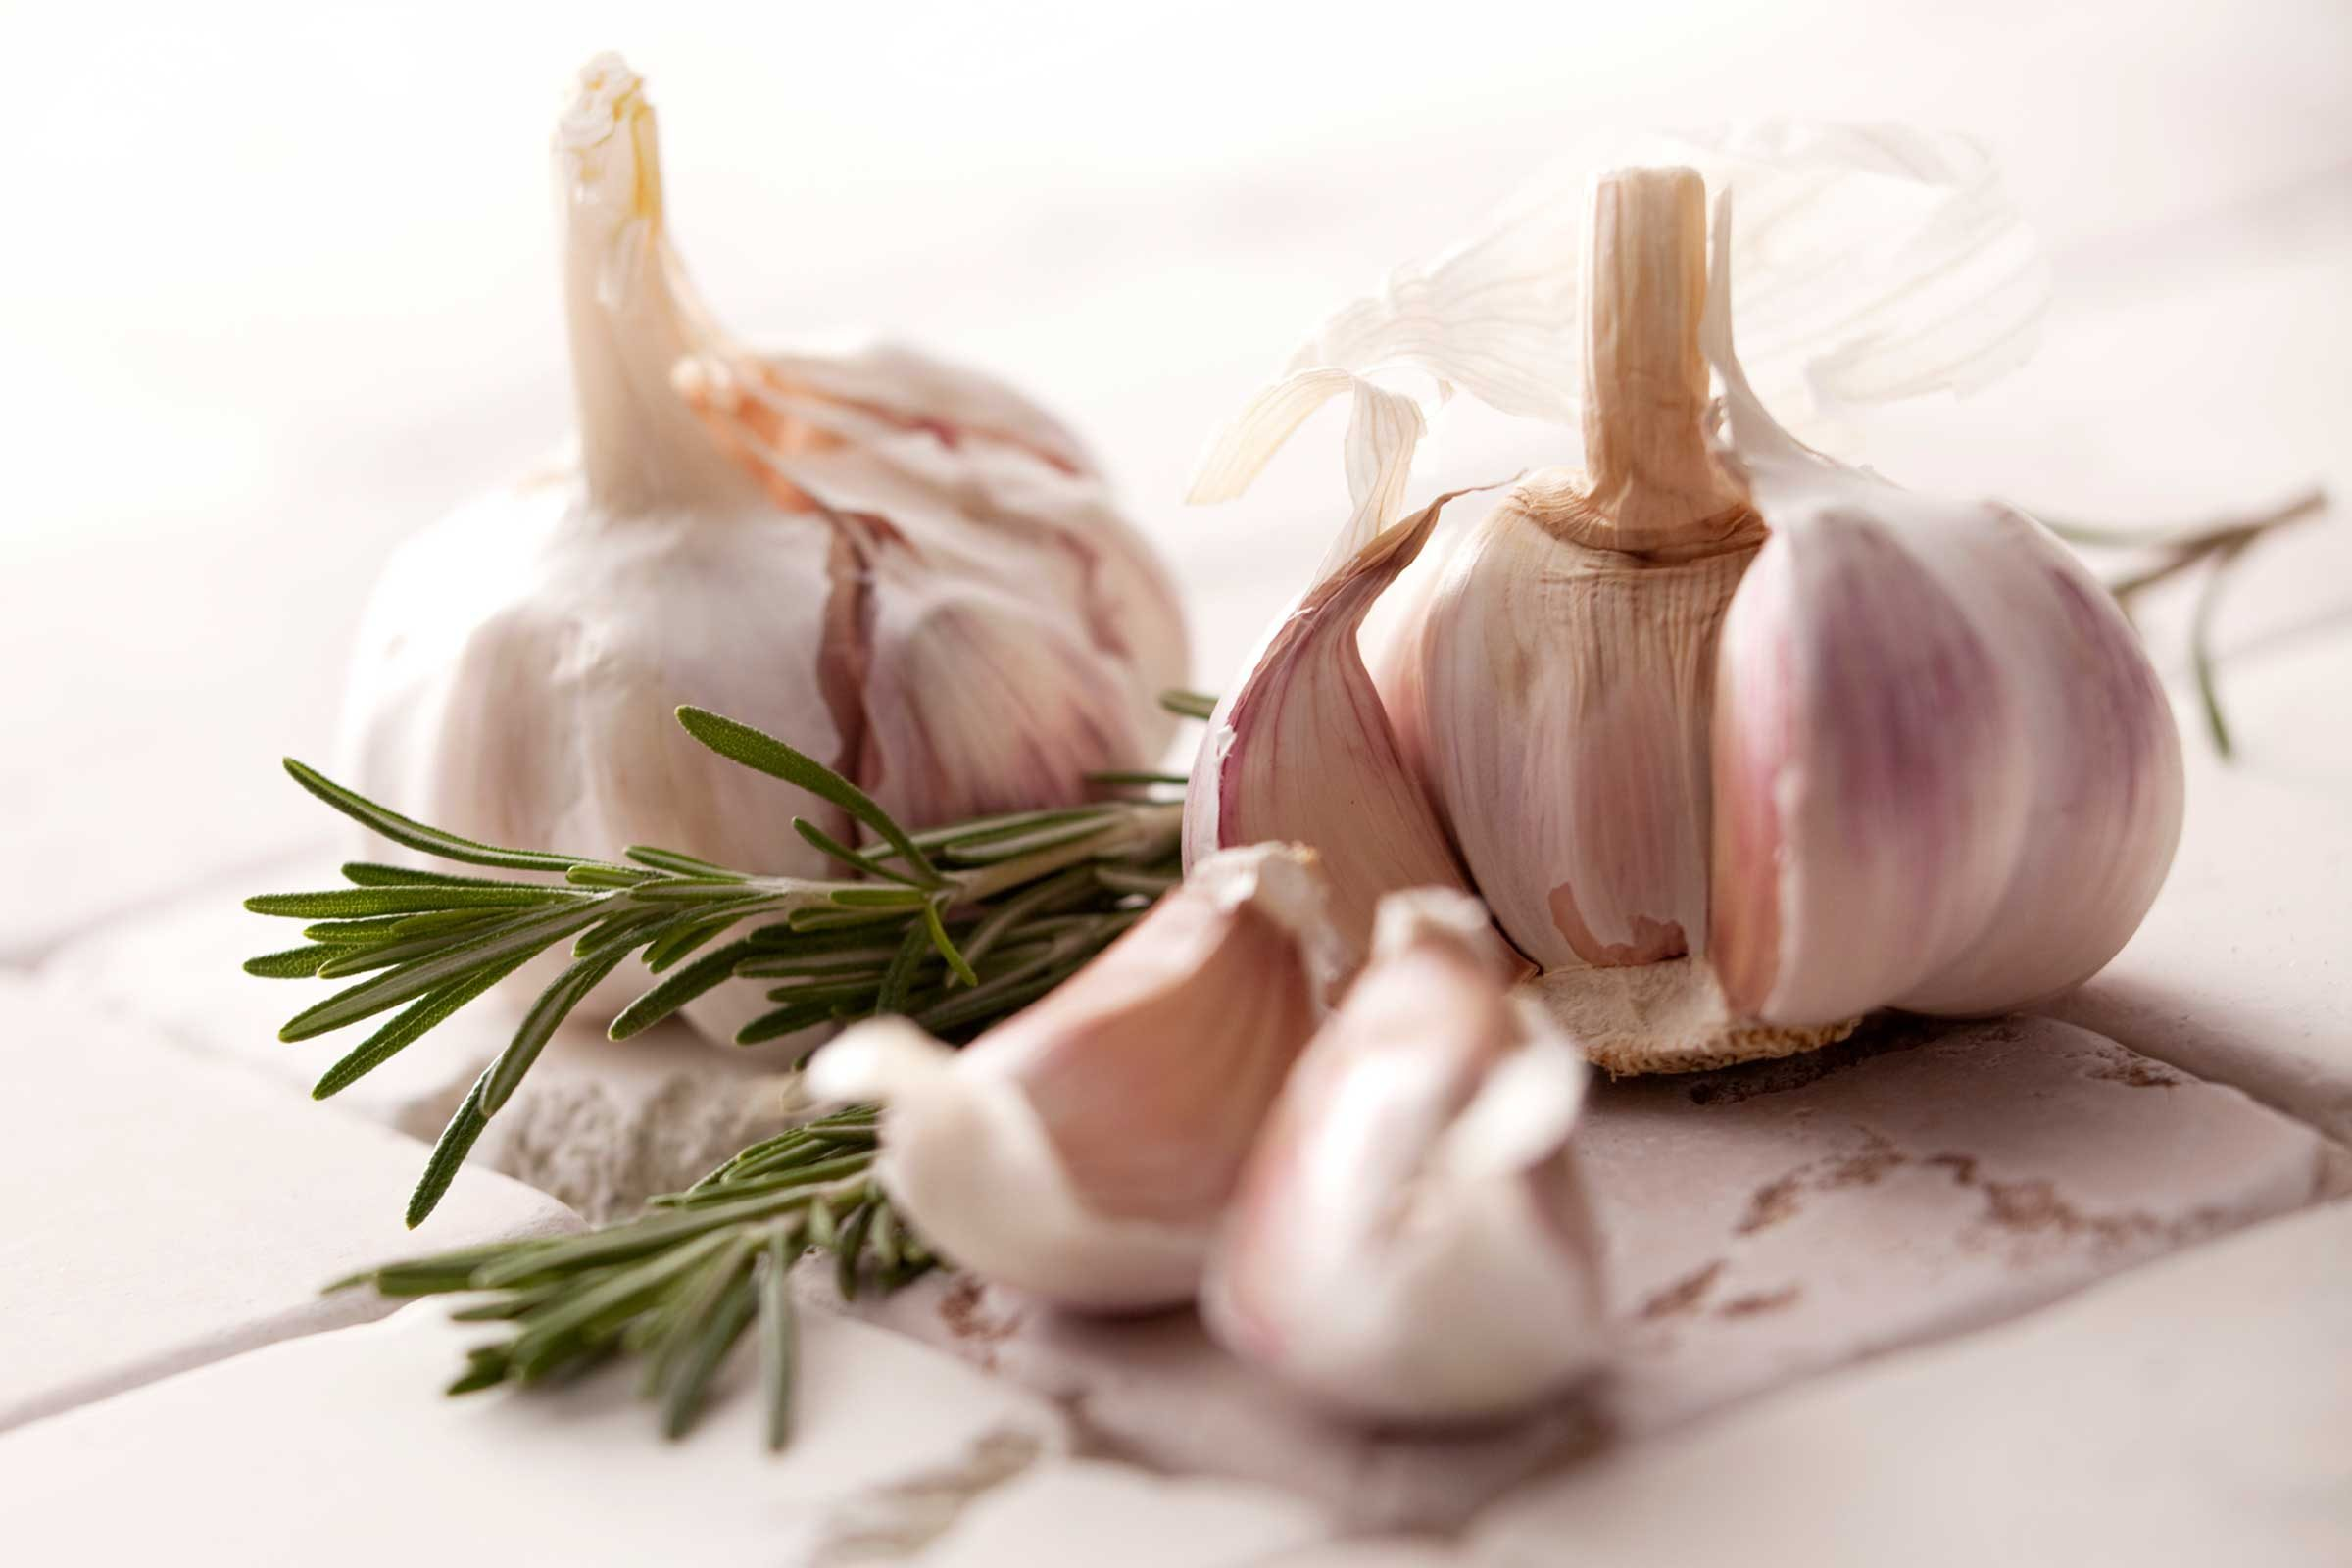 Add garlic to everything you eat